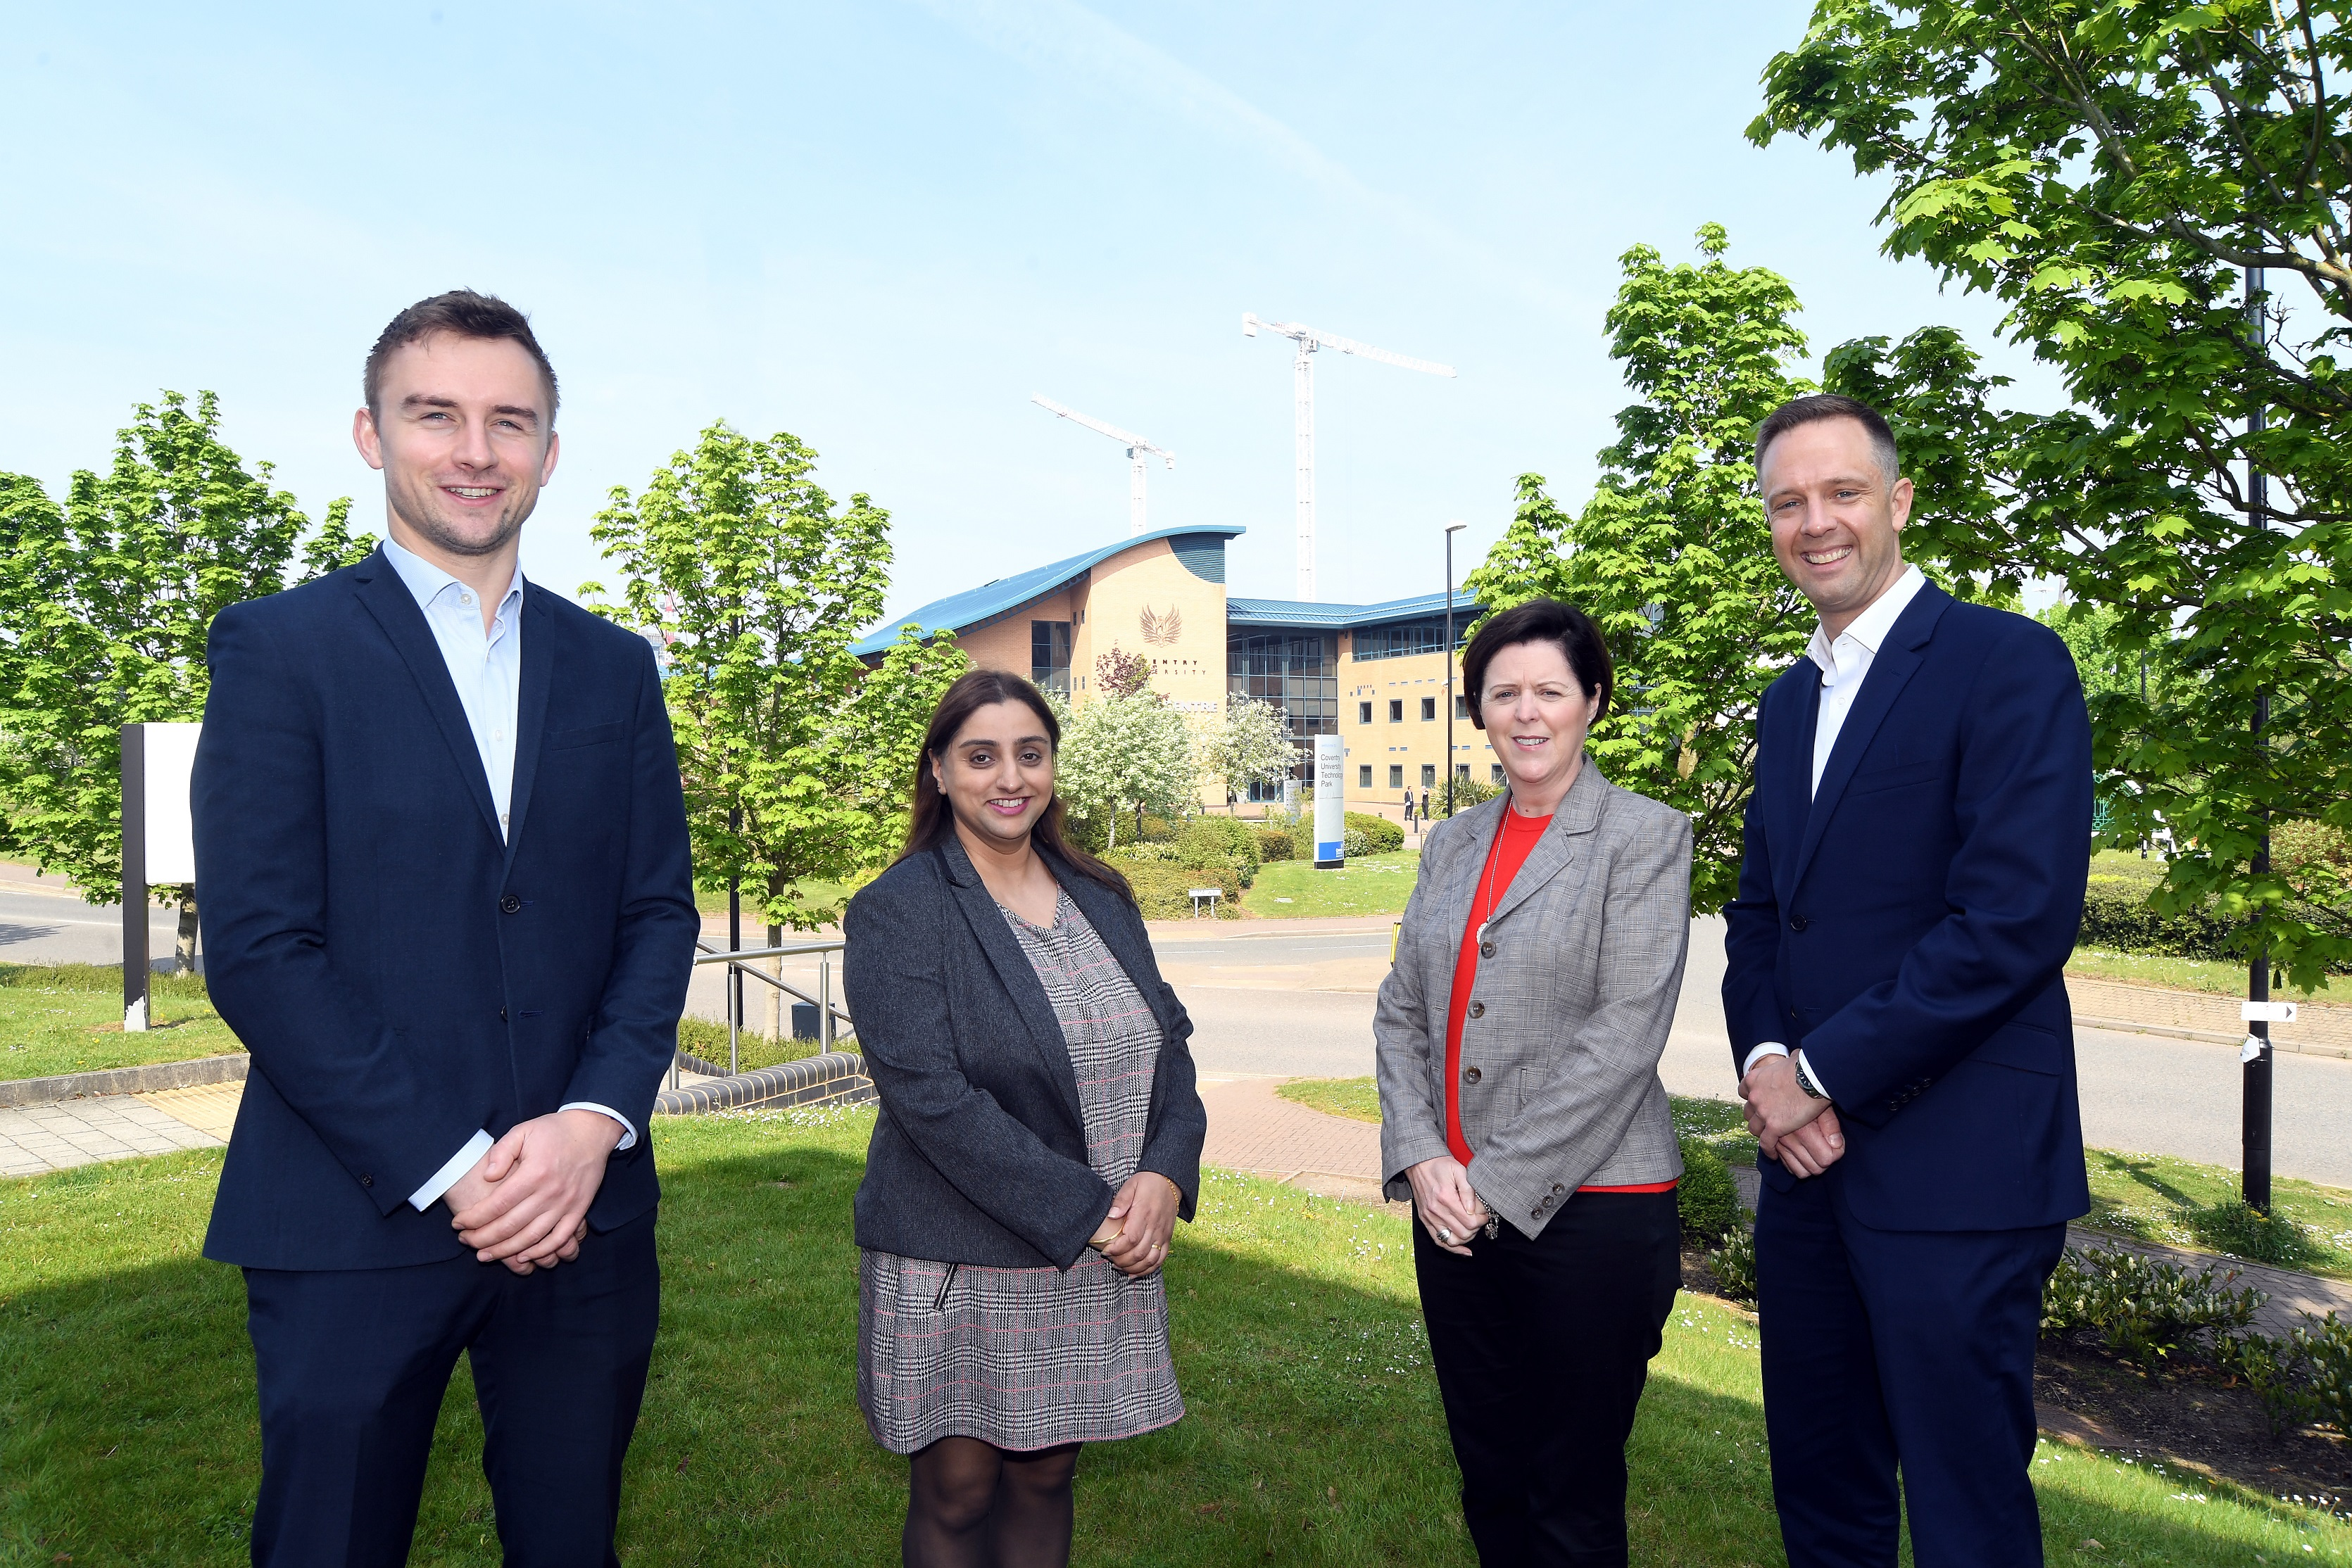 A technology park close to Coventry city centre is close to capacity after welcoming its latest tenant.